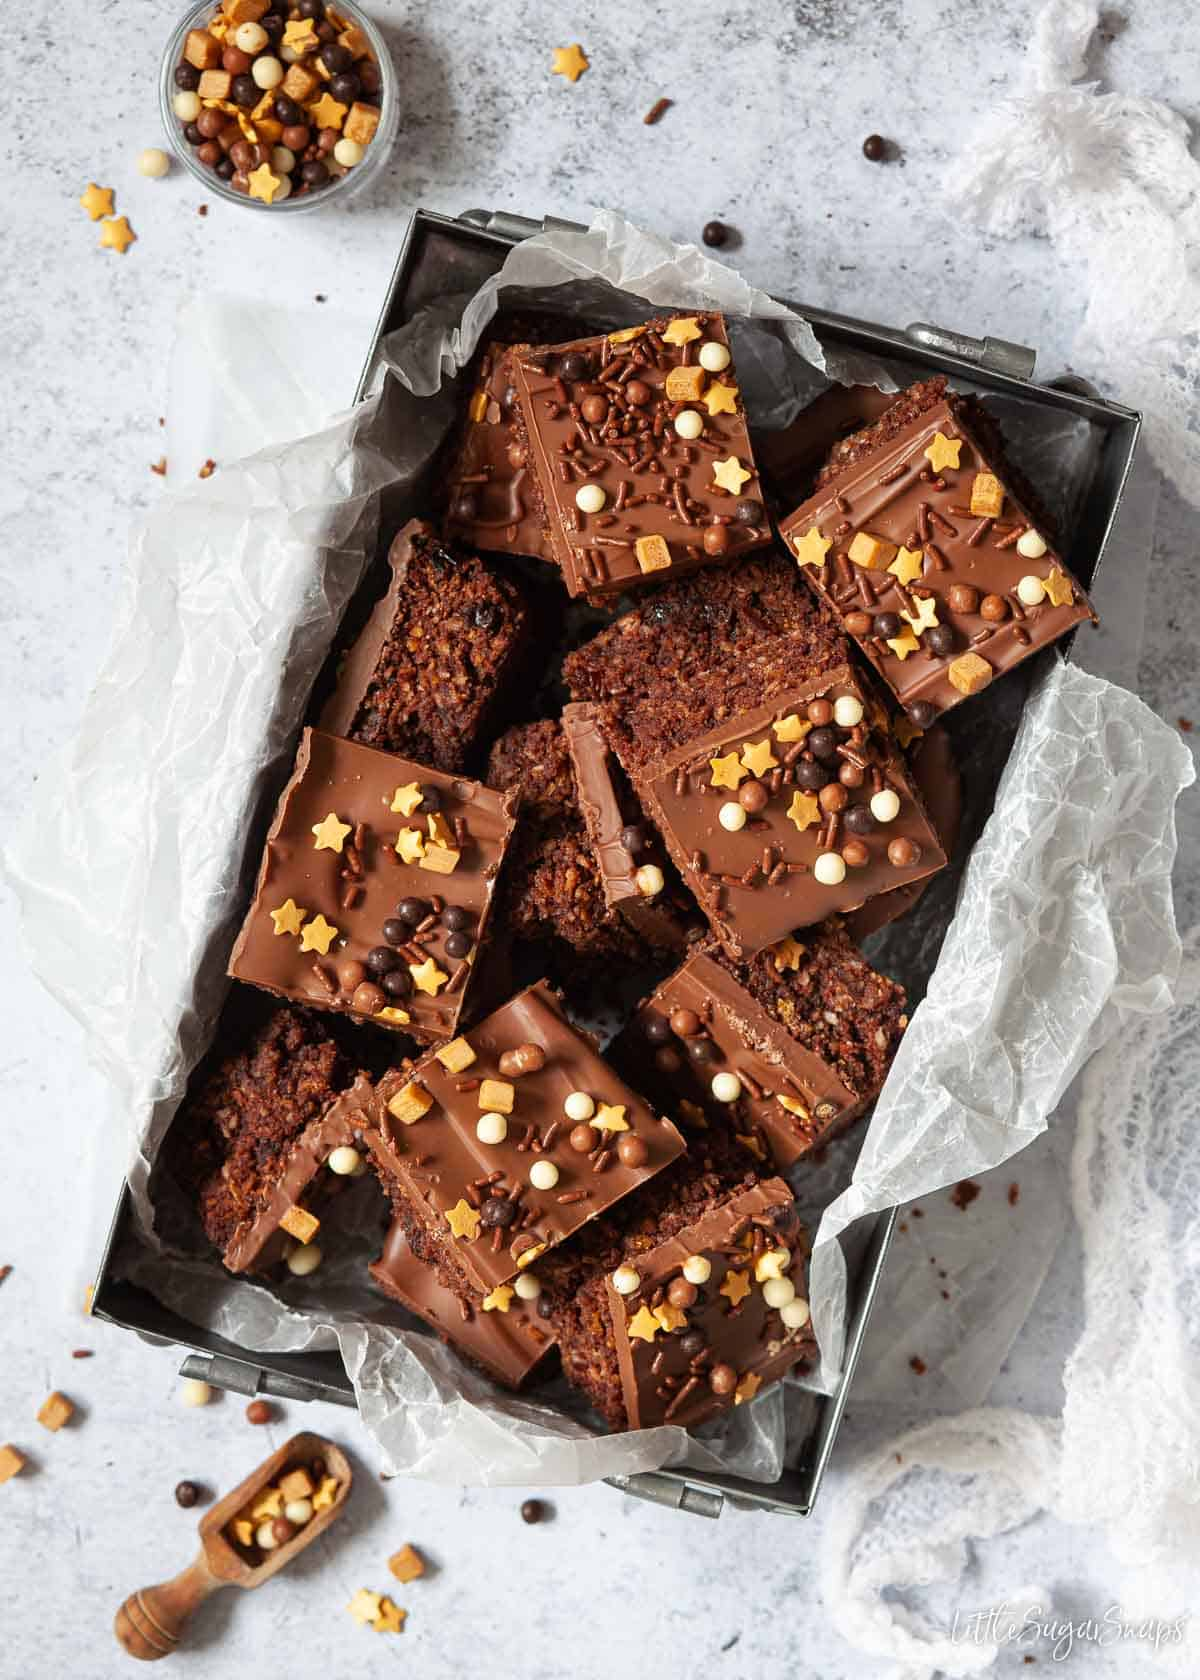 A tin of Australian Crunchie bars topped with chocolate and sprinkles